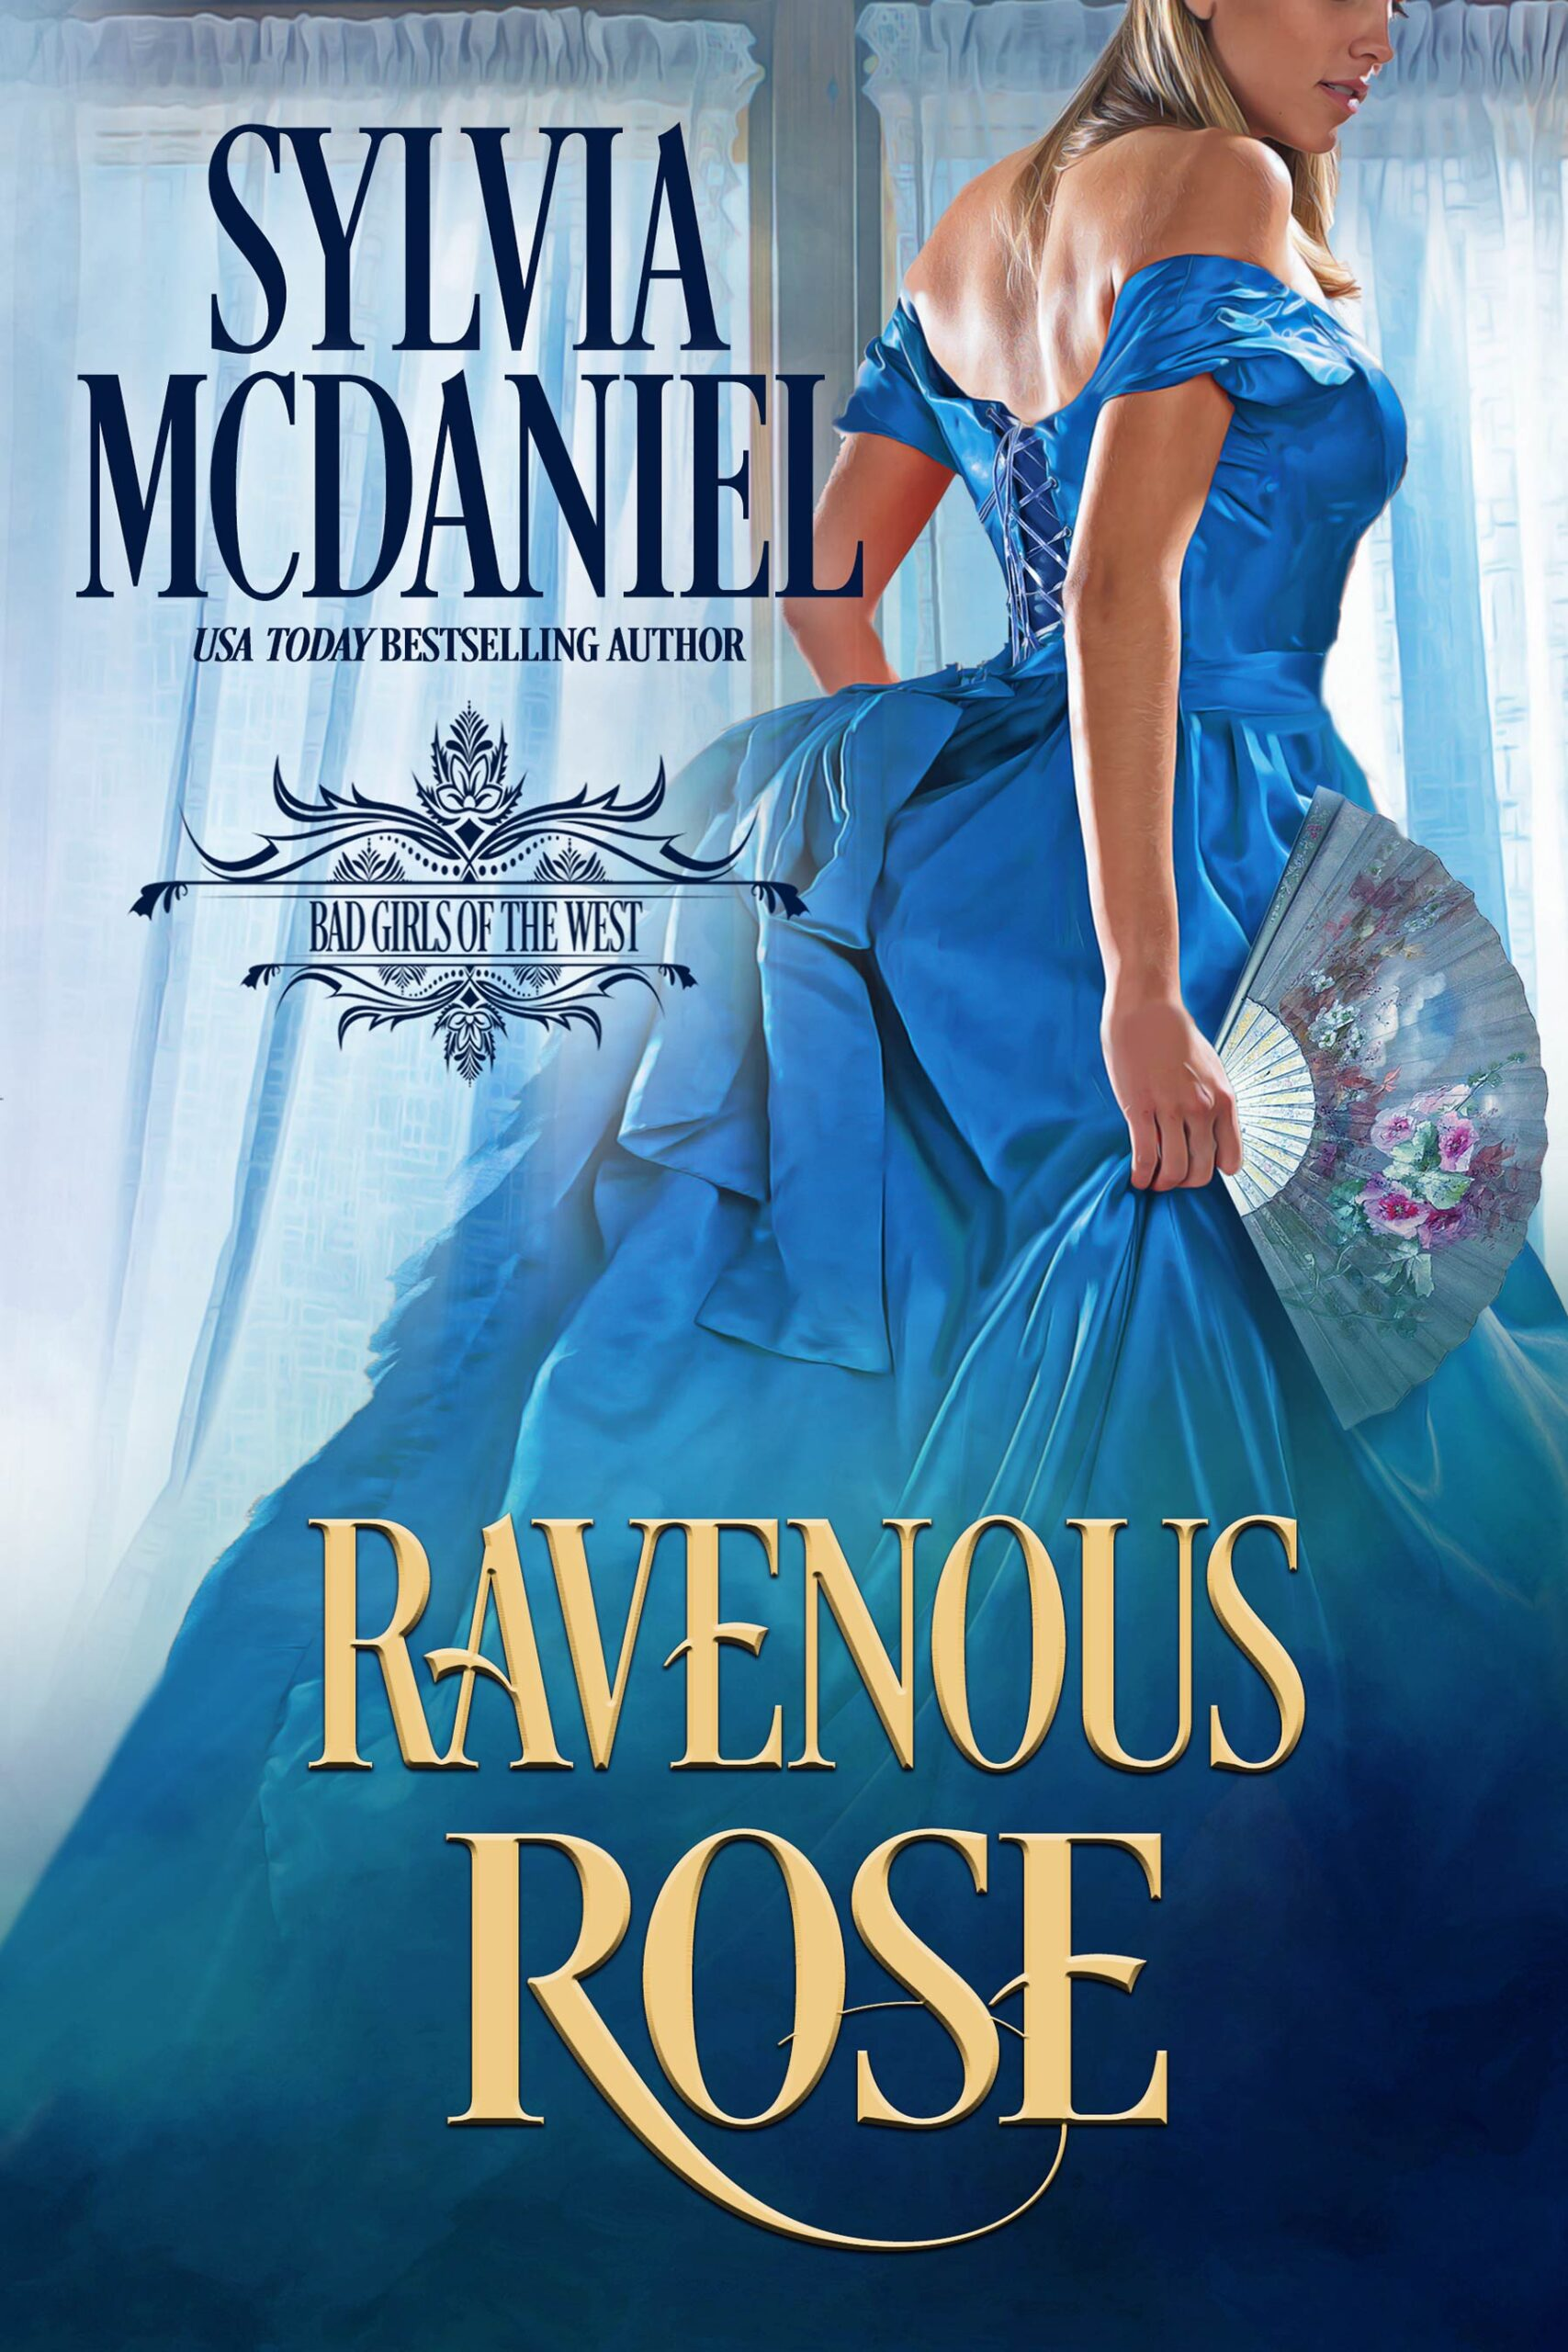 Cover of Ravenous Rose by Sylvia McDaniel. Blonde girl with a naked back and a blue silk dress and a fan.